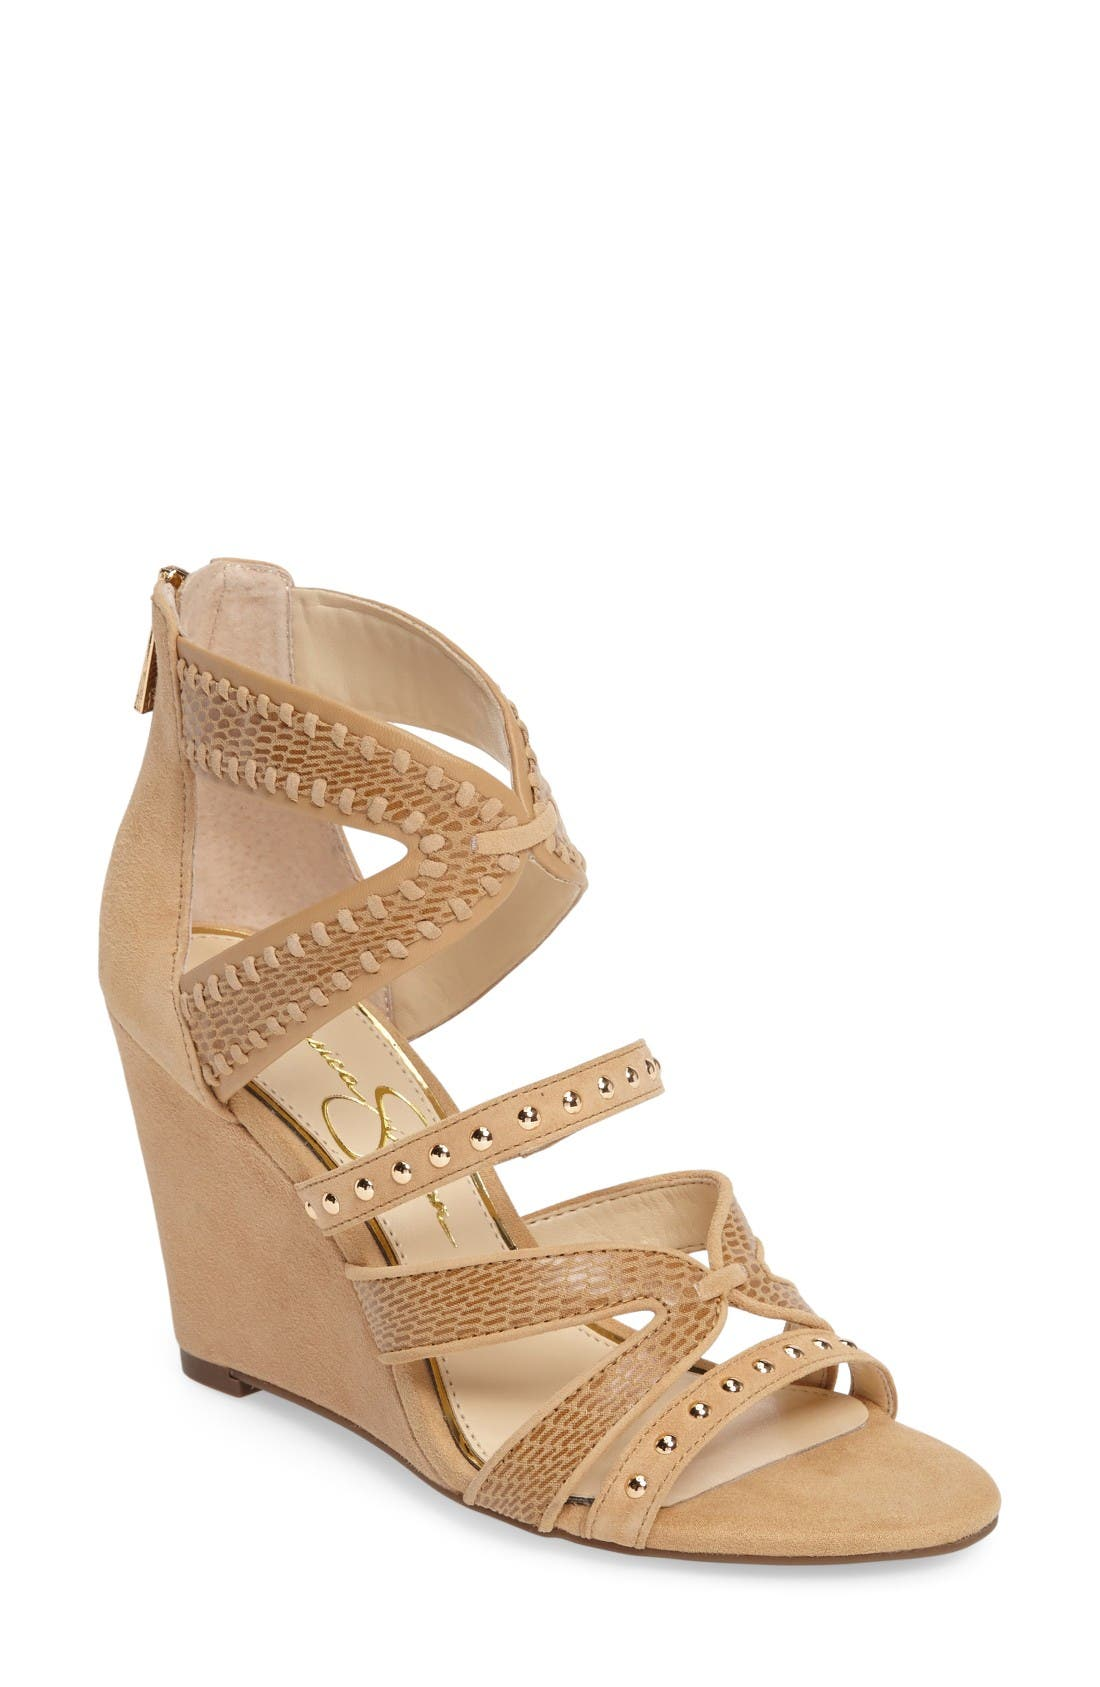 Jessica Simpson Zenolia Strappy Embellished Wedge (Women)